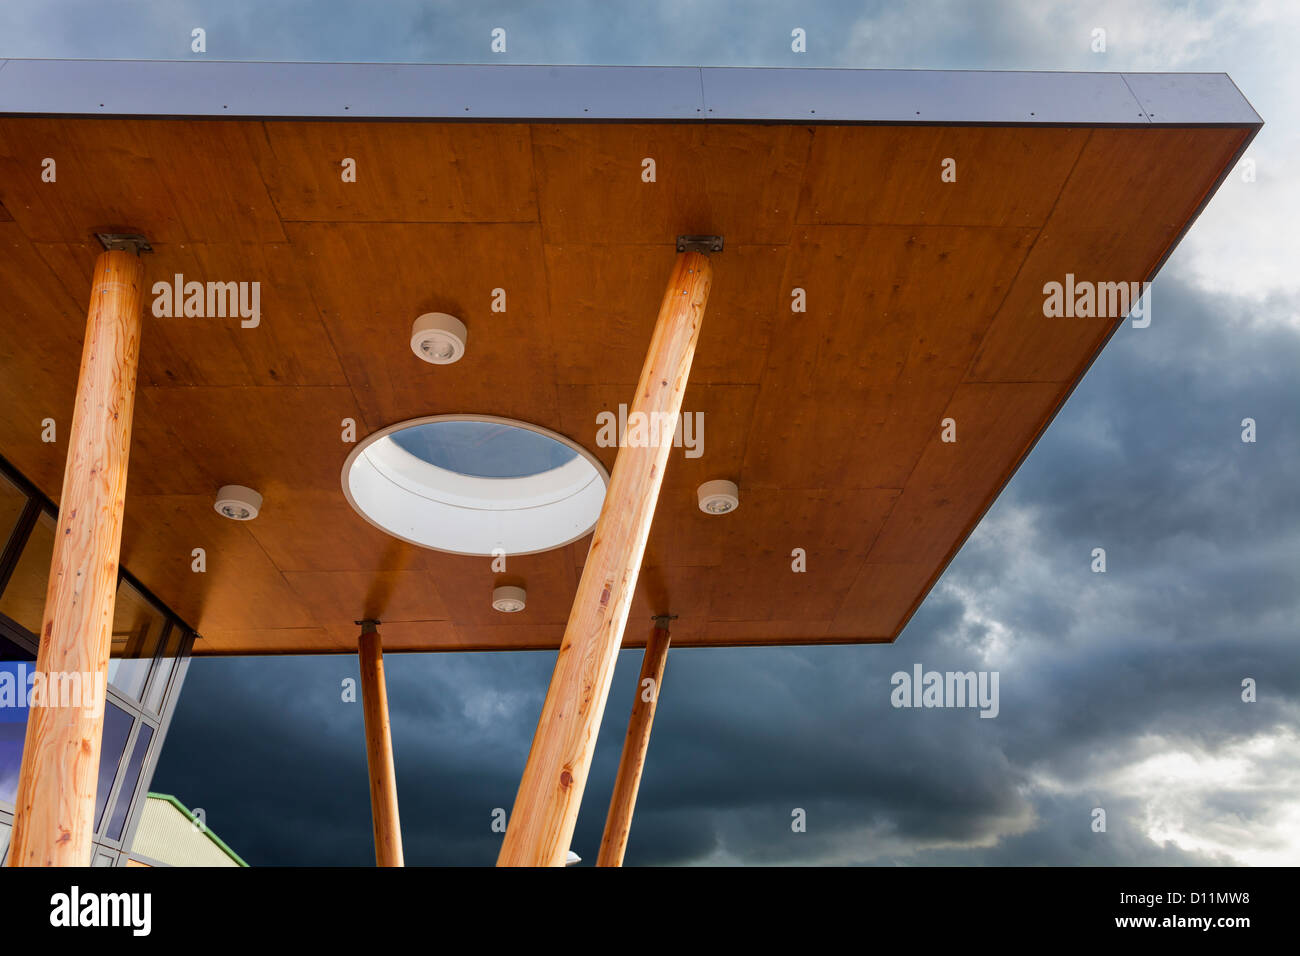 Modern architecture canopy with wooden pillars against sky. Stock Photo